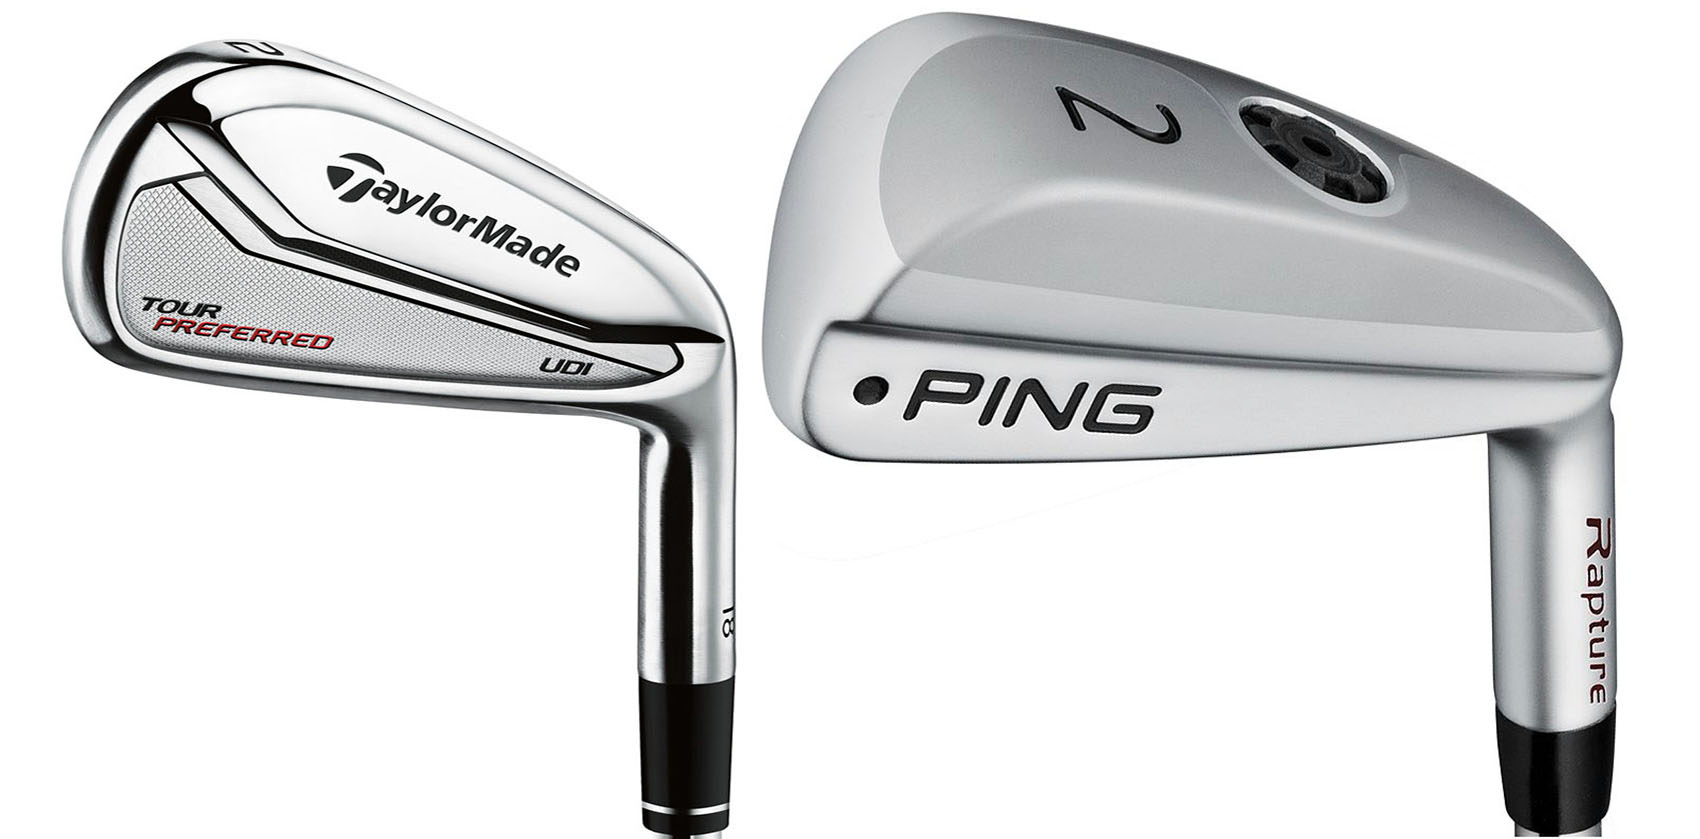 PING Rapture DI Vs TaylorMade Tour Preferred UDI Review